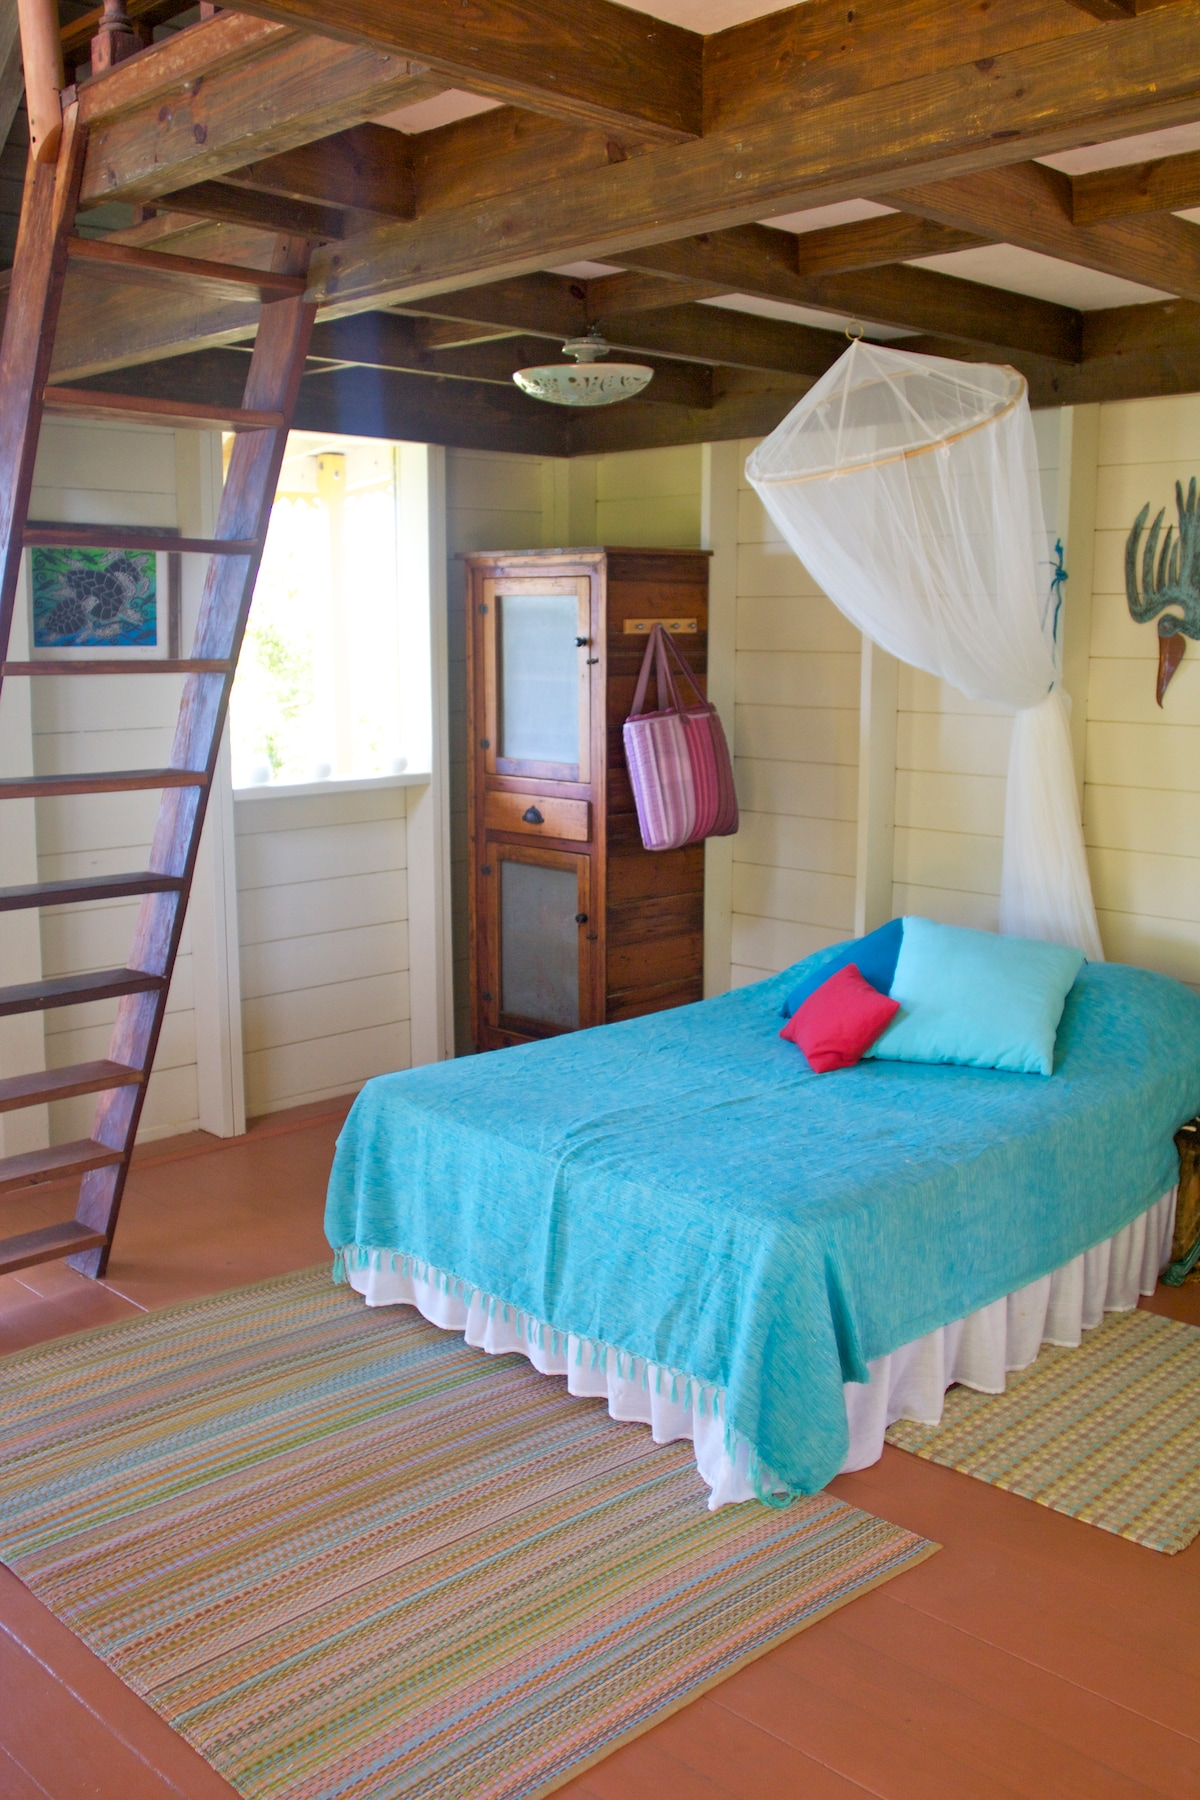 Main room - Full size bed with the ladder to reach up to the mezzanine